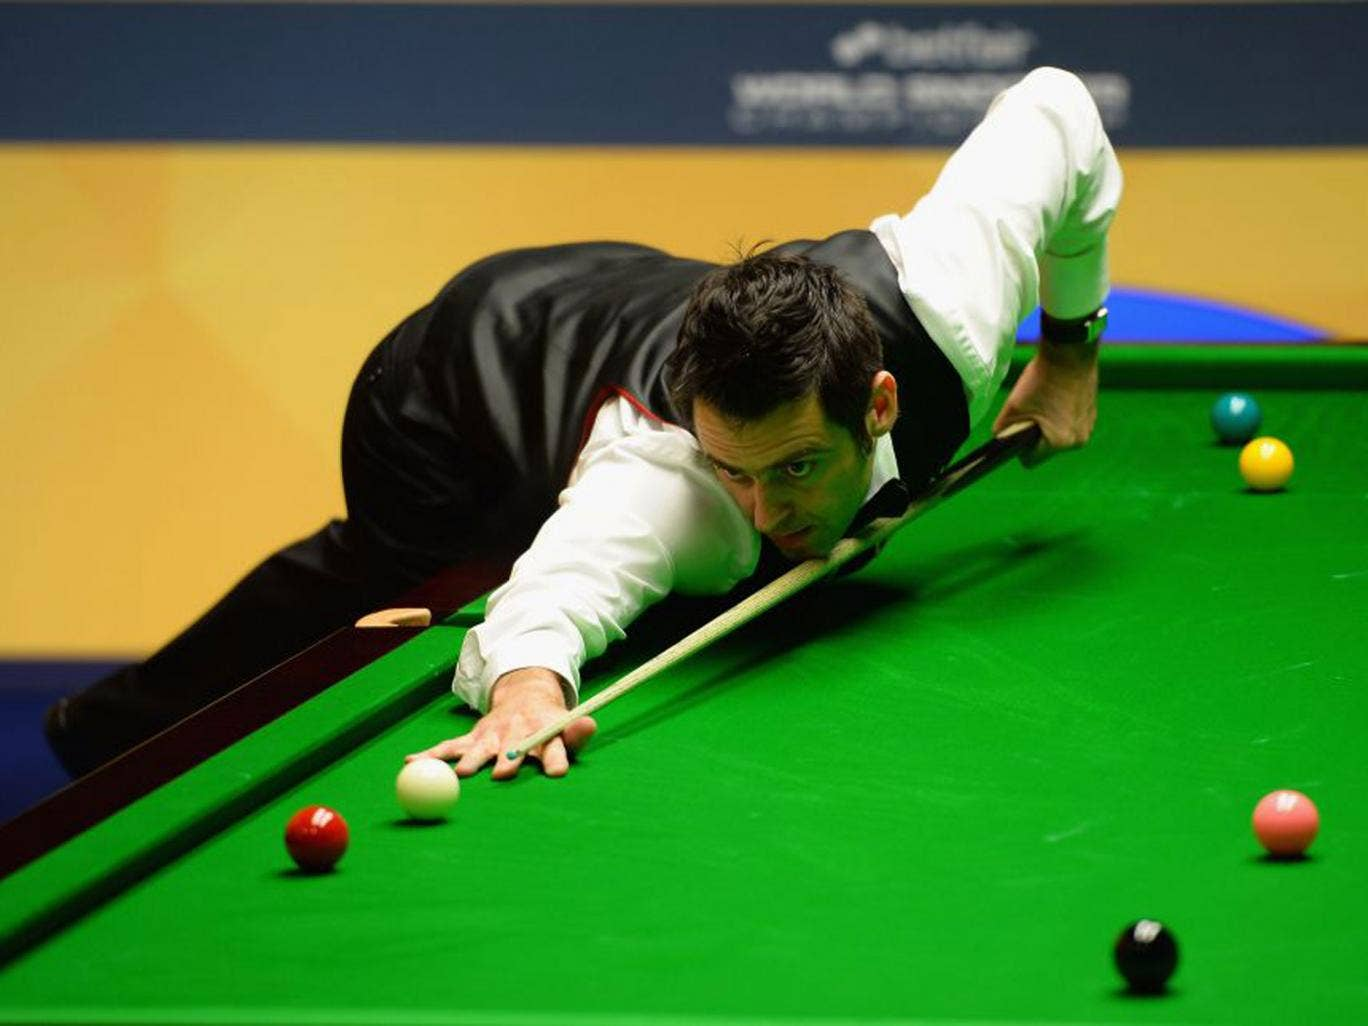 Ronnie O'Sullivan in first round action at the Crucible